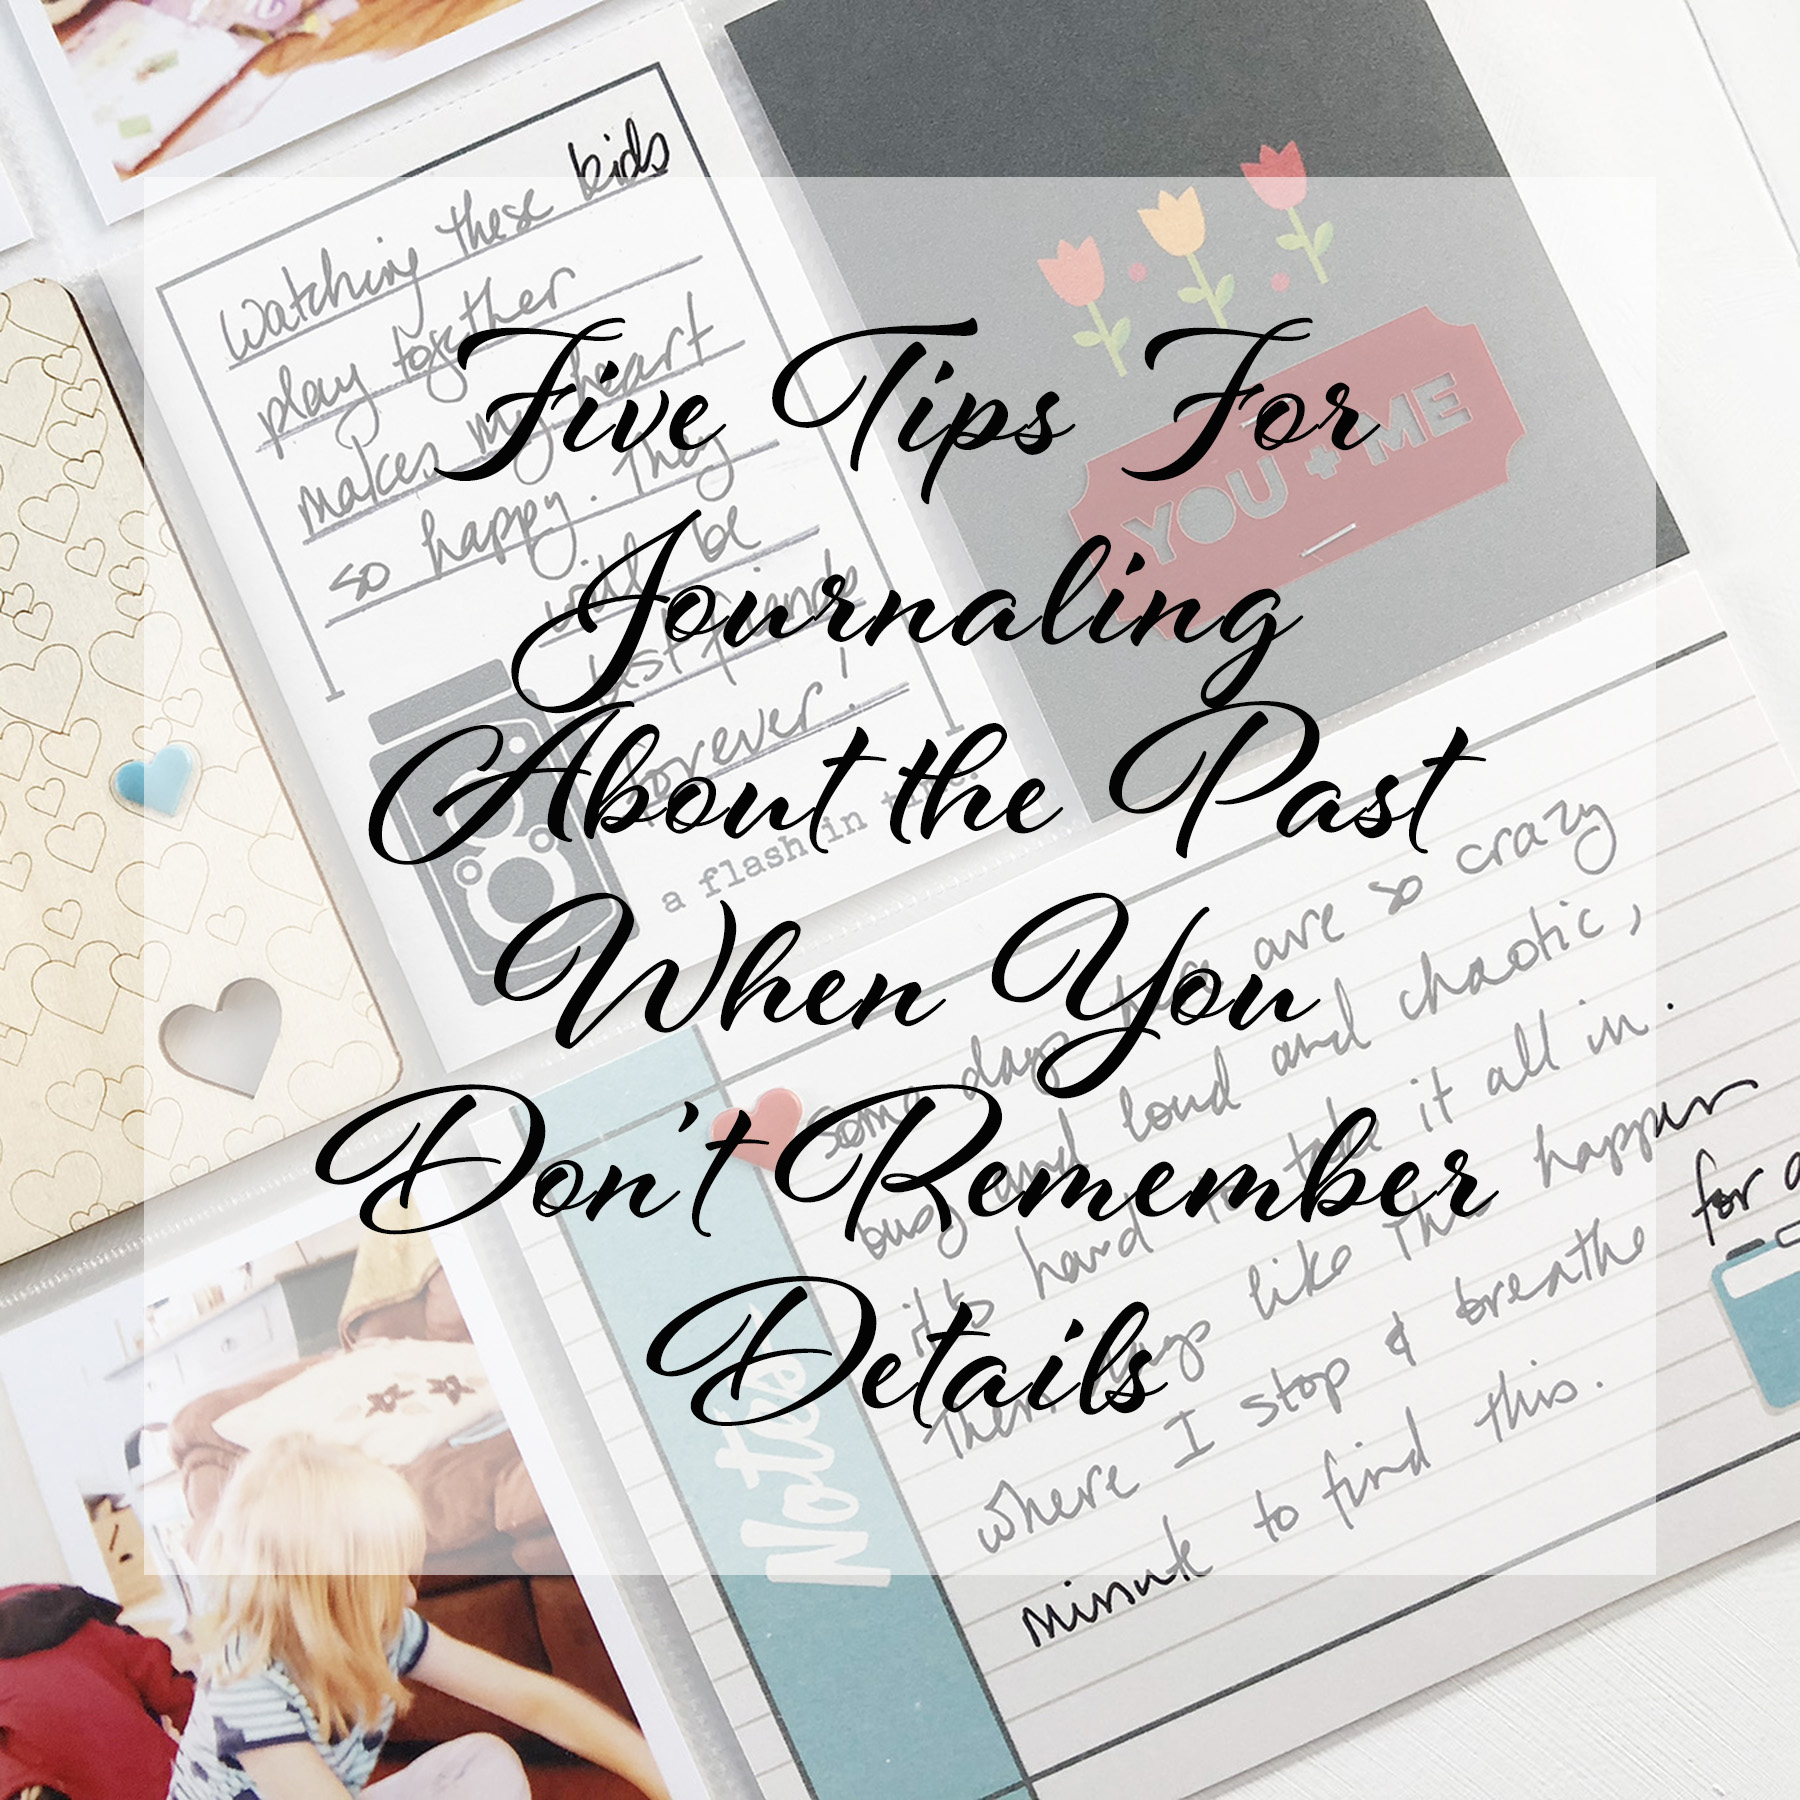 Larkindesign Five Tips For Journaling the Past When You Don't Remember Details